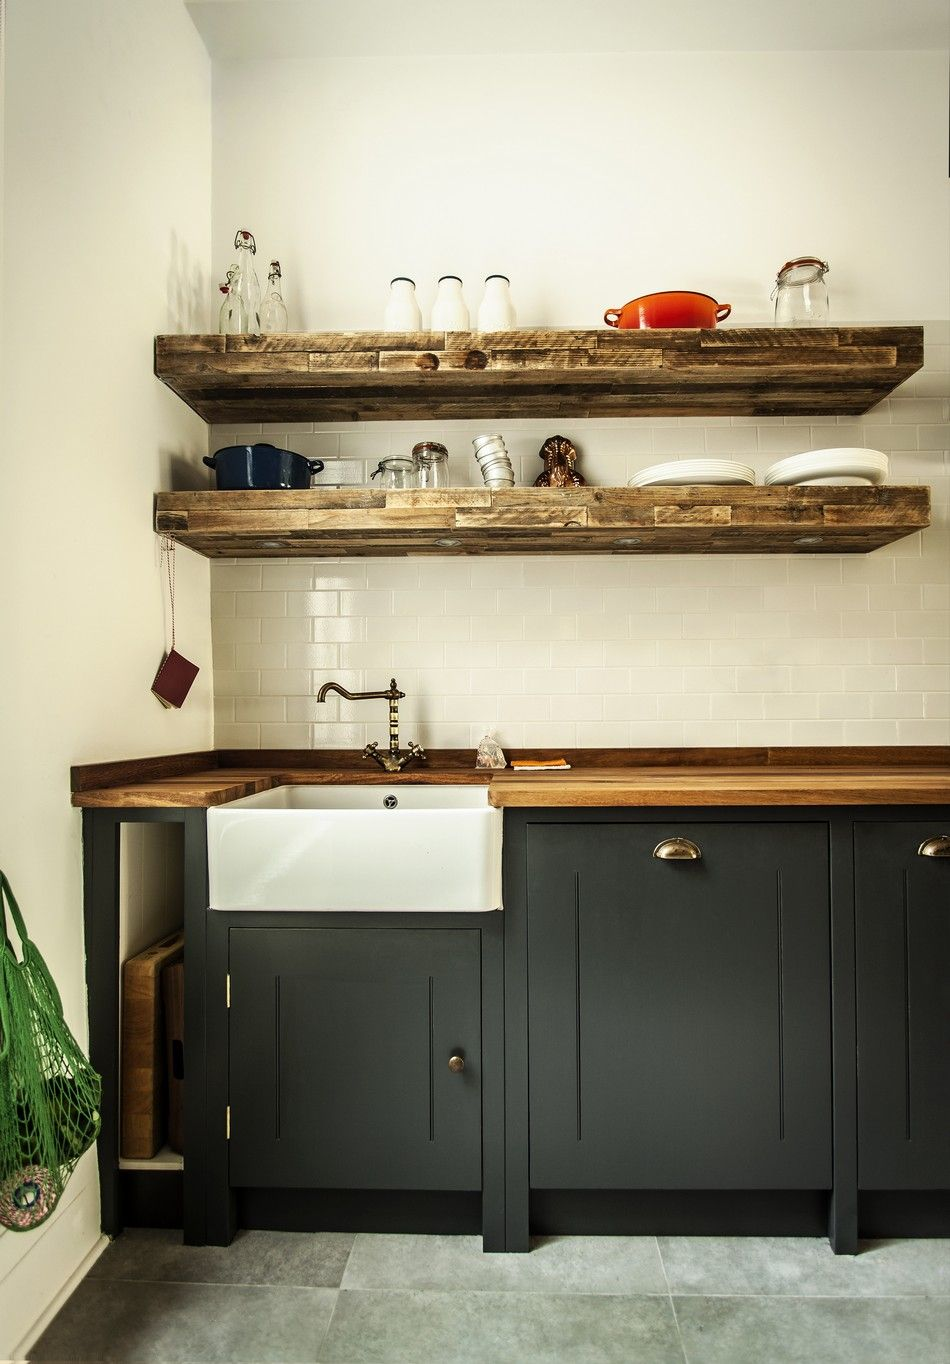 ... Distinctive Kitchens By British Standard    Http://freshome.com/2015/03/12/affordable Handmade Cupboards For Distinctive  Kitchens By British Standard/